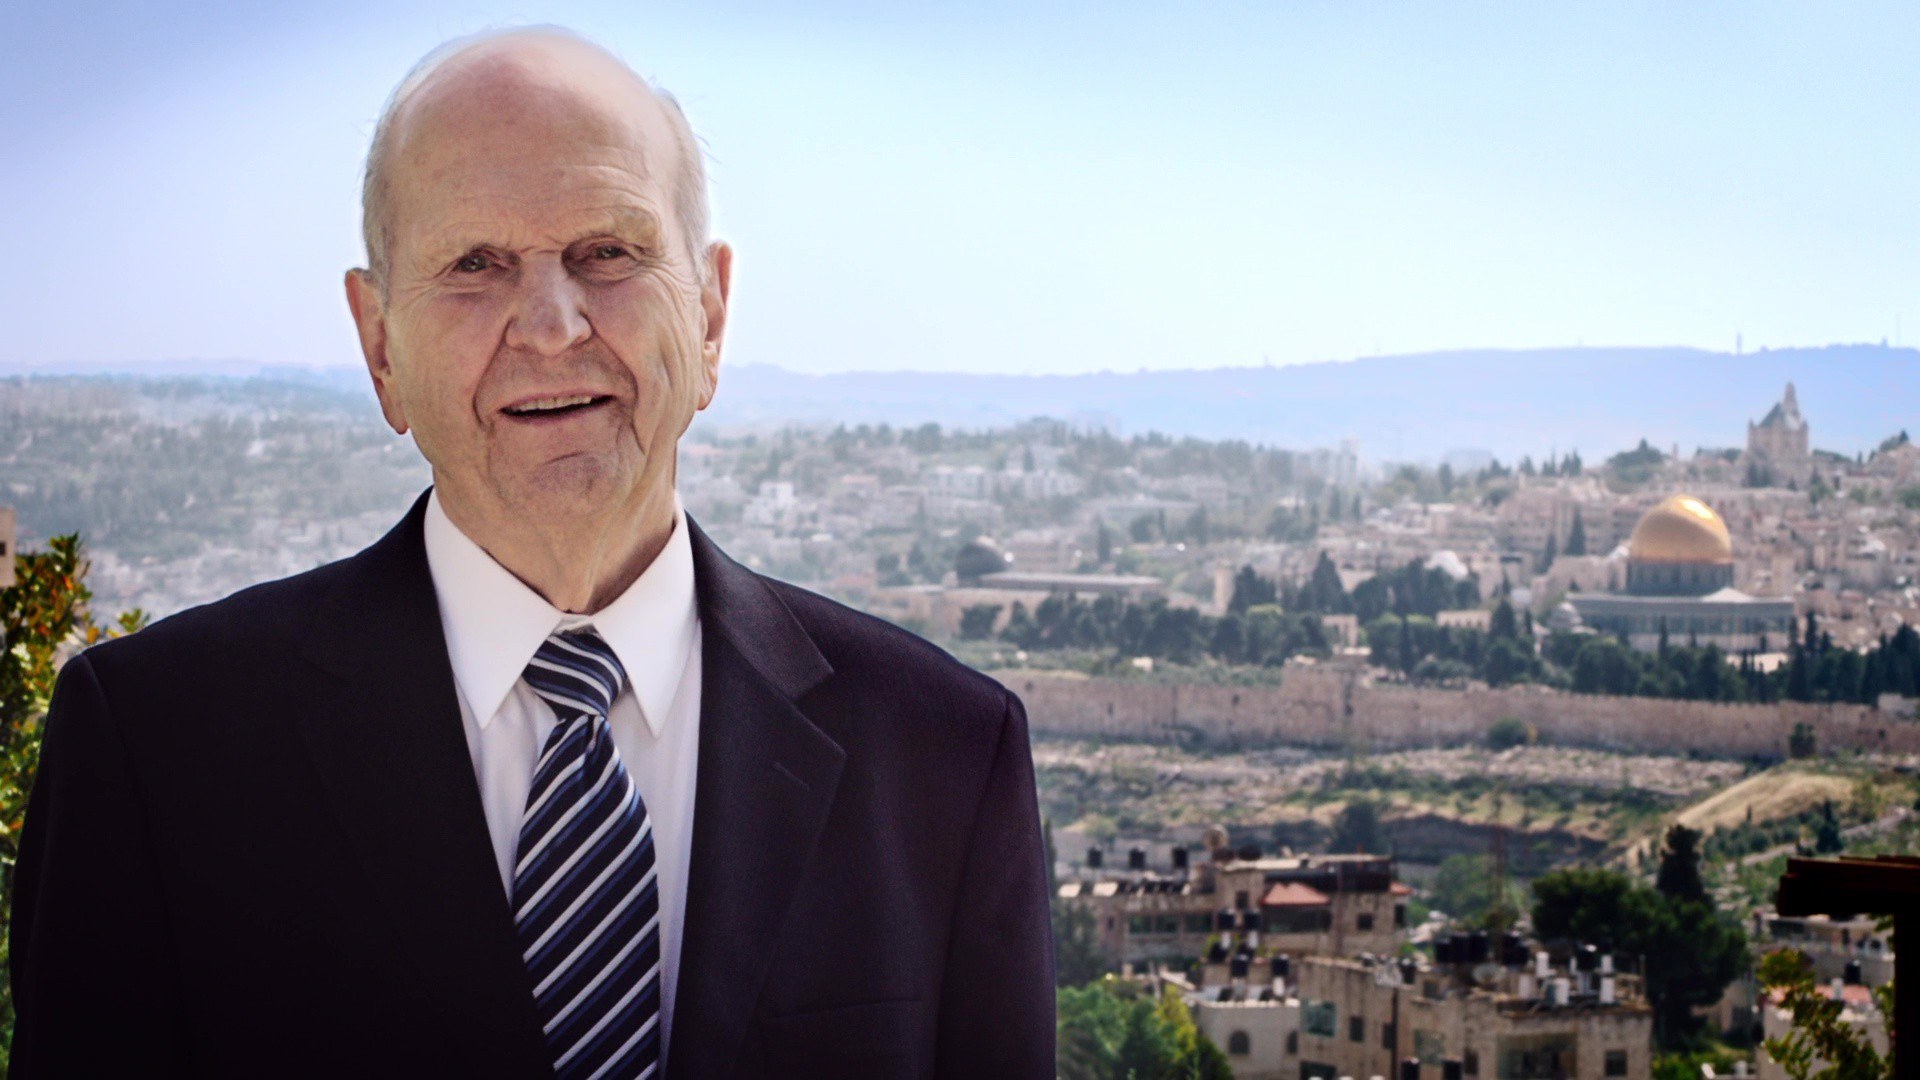 President Russell M. Nelson shares his testimony of the reality of Jesus Christ and the power of His Atonement.